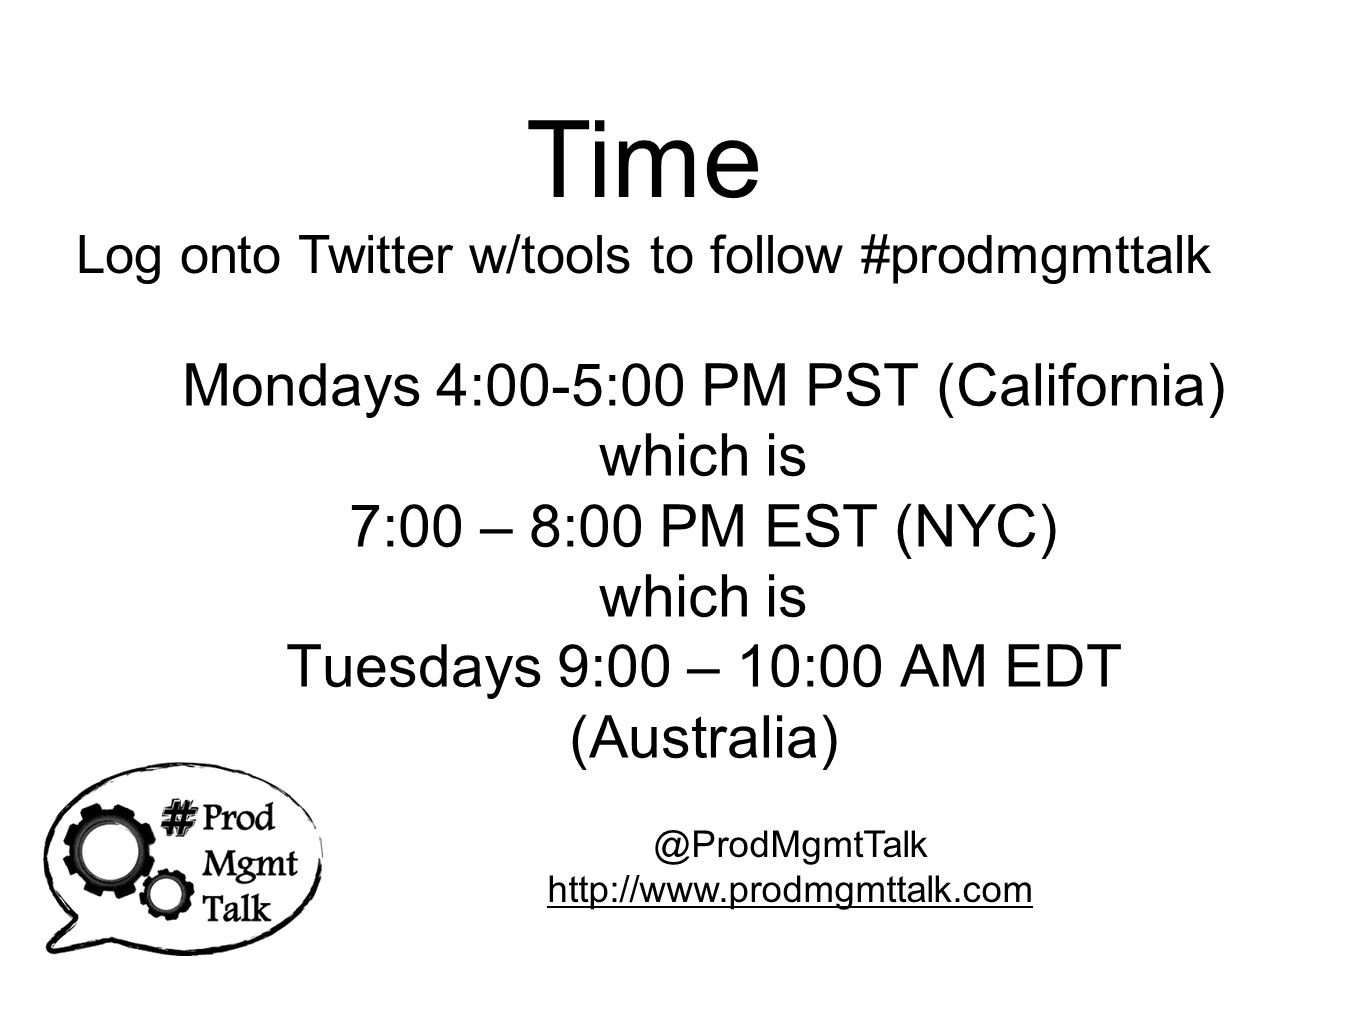 Mondays 4:00-5:00 PM PST (California) which is 7:00 – 8:00 PM EST (NYC) which is Tuesdays 9:00 – 10:00 AM EDT (Australia) @ProdMgmtTalk http://www.prodmgmttalk.com Time Log onto Twitter w/tools to follow #prodmgmttalk